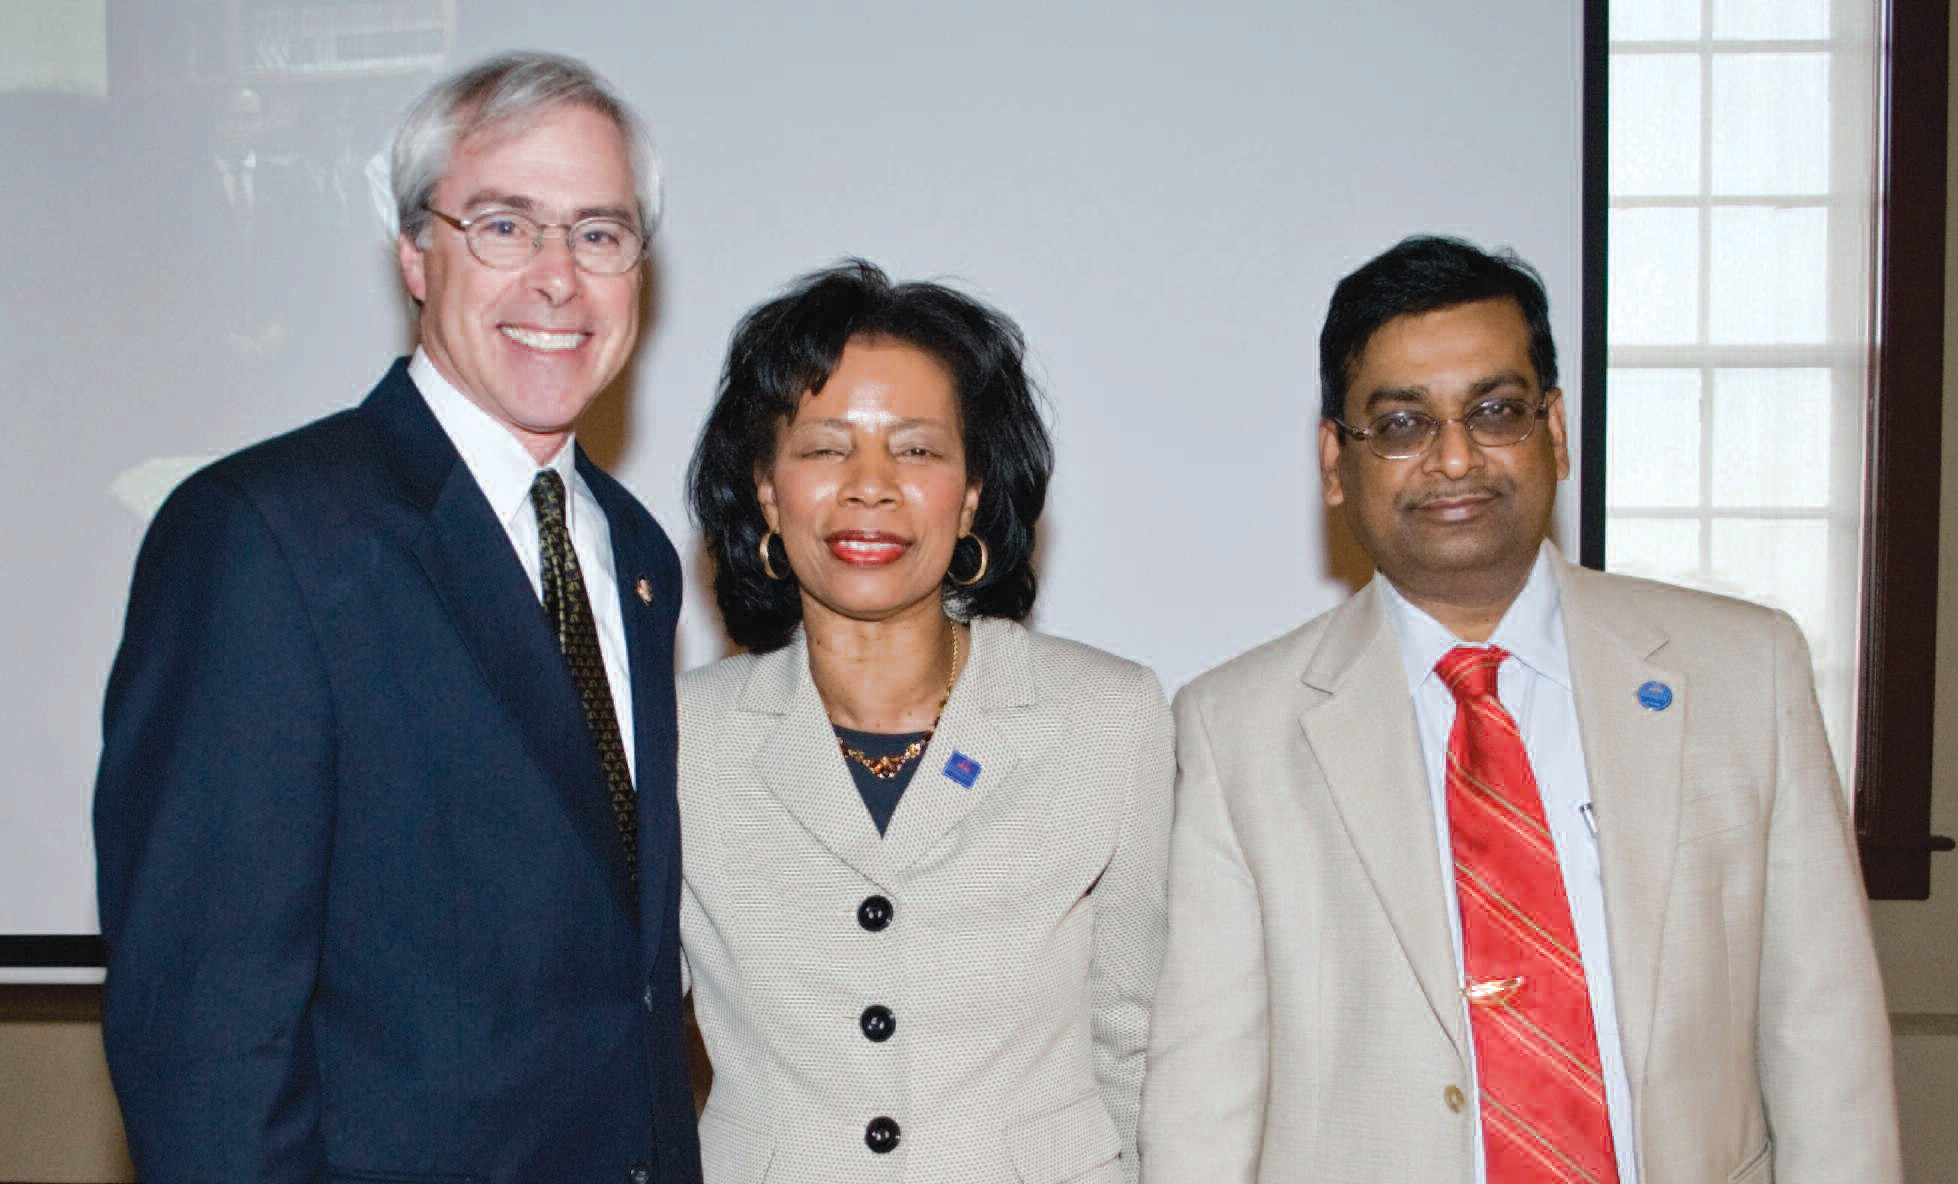 Dr. Mary C. Wyatt, vice president for Academic Affairs at SSU; and Dr. Chellu Chetty, associate vice president for Research and Sponsored Programs at SSU